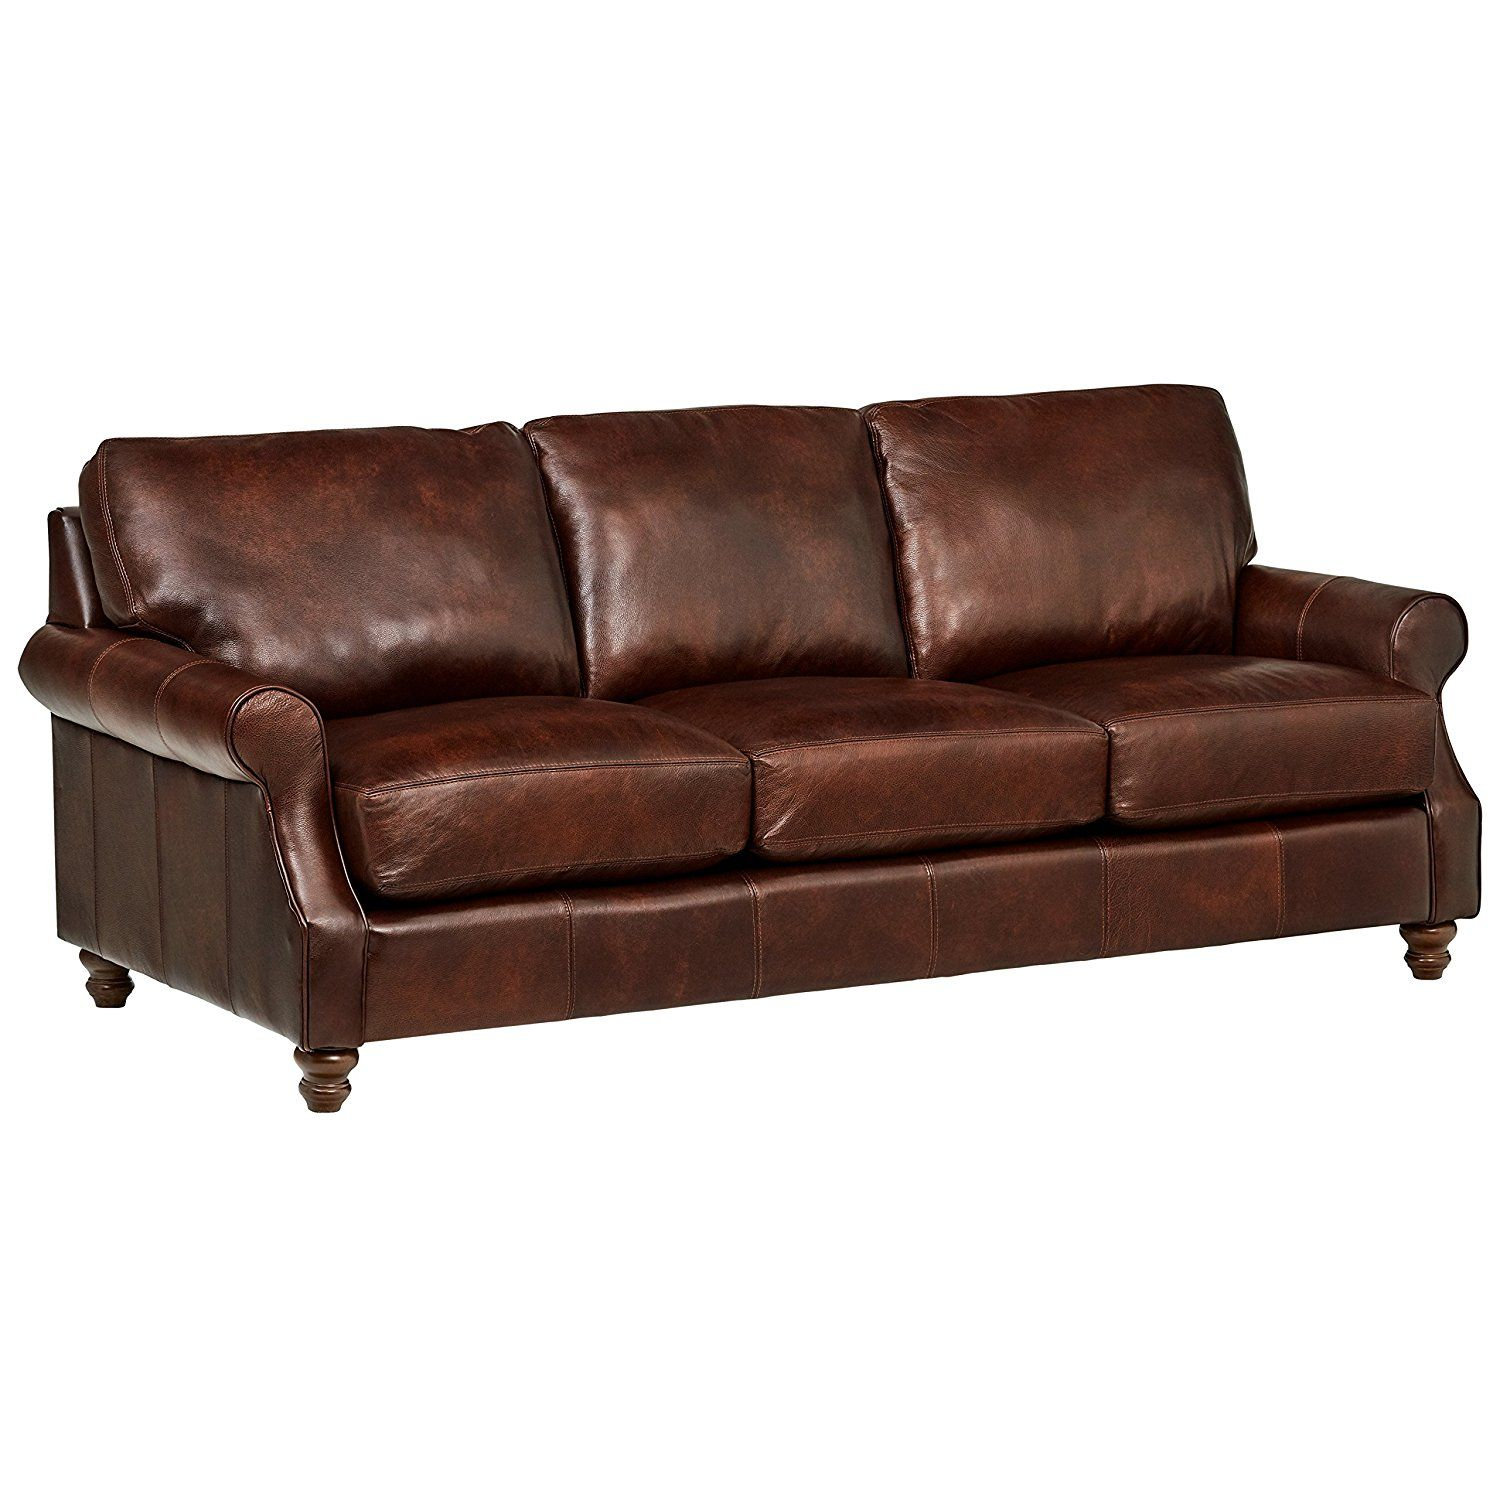 Genial 1 Stone U0026 Beam Charles Classic Oversized Leather Sofa